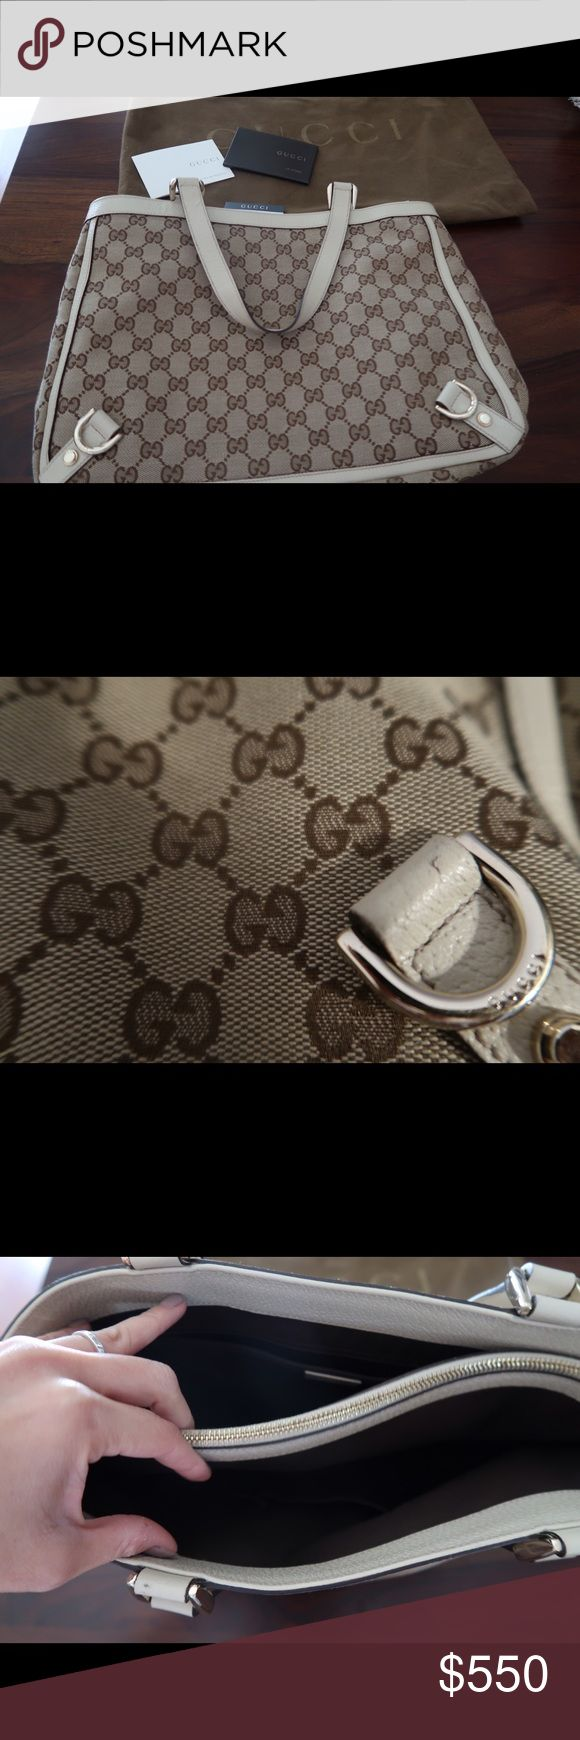 Authentic white signature monogram Gucci tote Gucci signature monogram tote with Classic GG canvas fabric. This bag was gently used 2-3 times with almost no signs of wear.  There is one tiny nick in the leather on the handle as shown in the photo.  Beautiful bag in excellent condition. Gucci Bags Totes